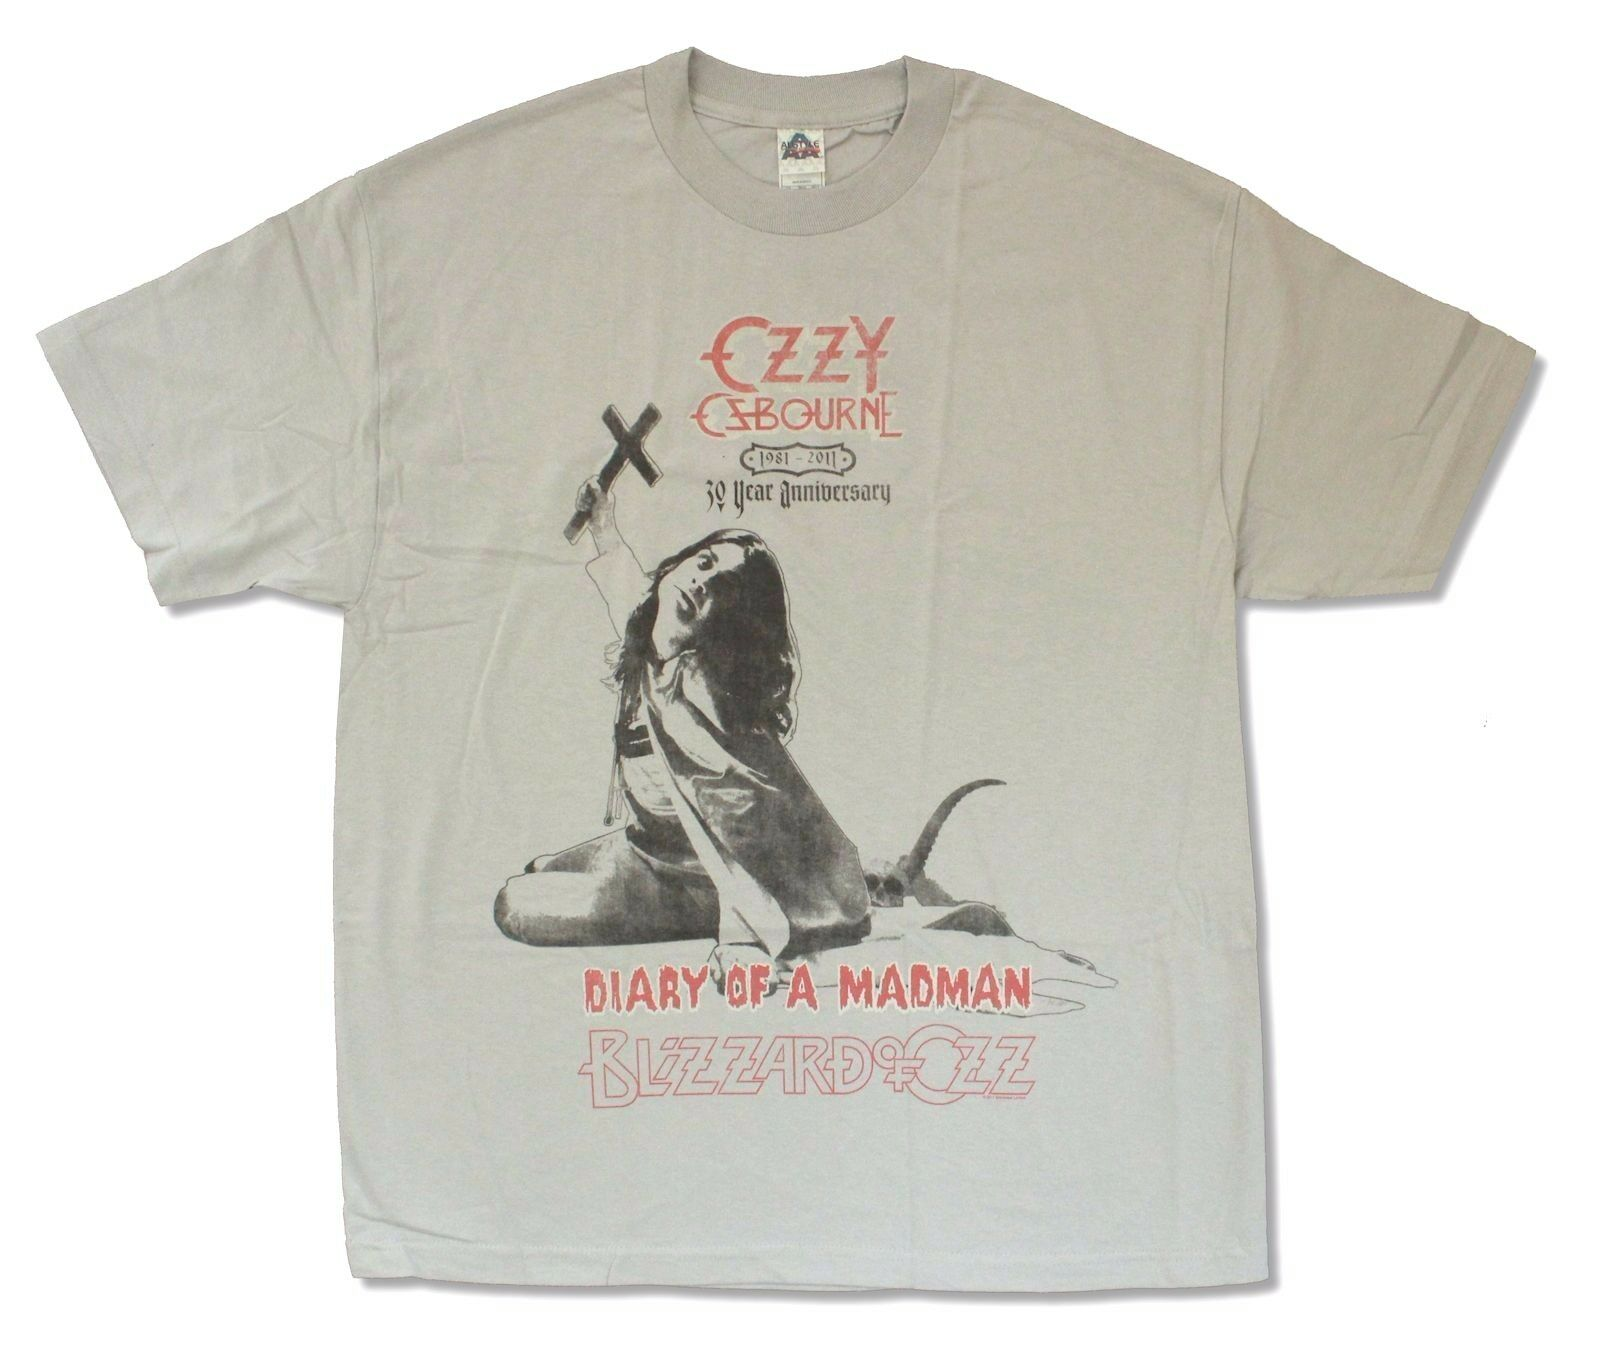 Ozzy Osbourne 30 Year Anniversary Light Grey T Shirt New Official